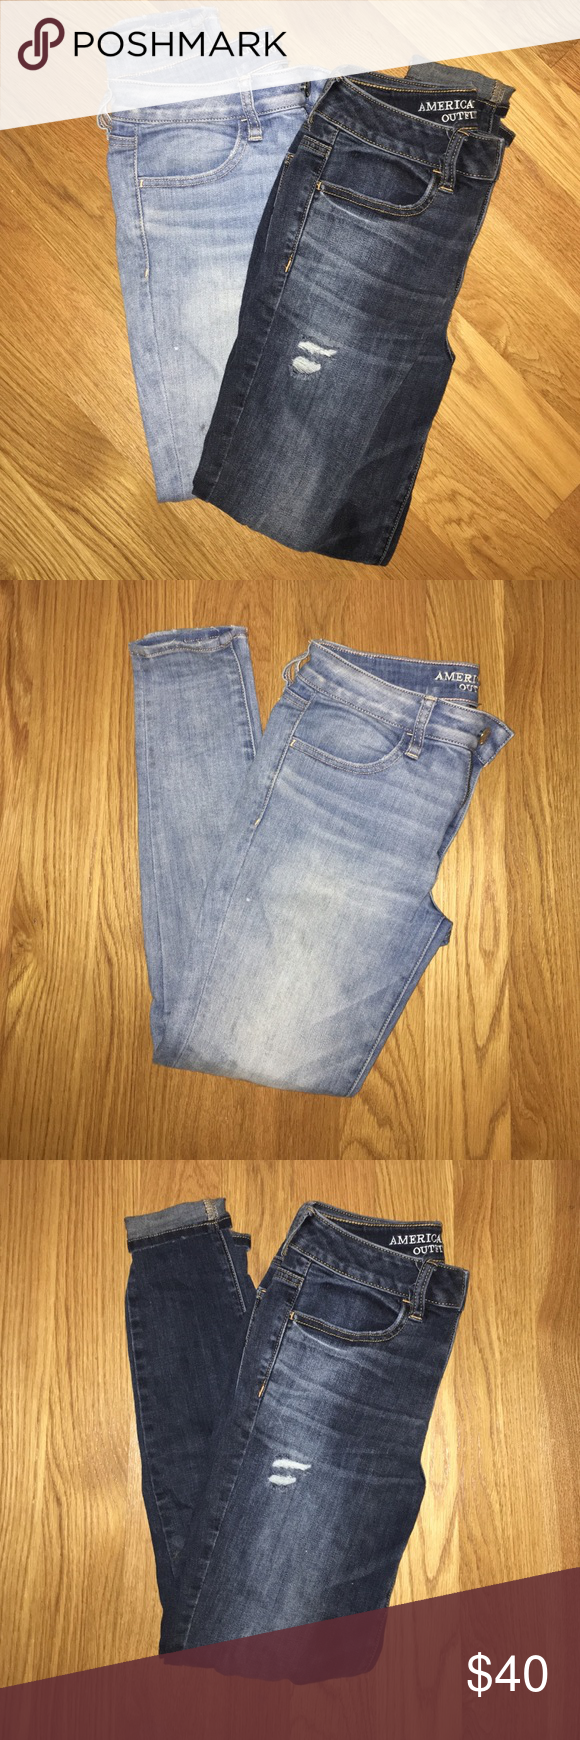 American Eagle Jeans Duo Two pairs of size 6 American Eagle skinny jeans! One is dark wash, ripped, and high waisted. Other is light wash, solid, regular rise. American Eagle Outfitters Pants Skinny